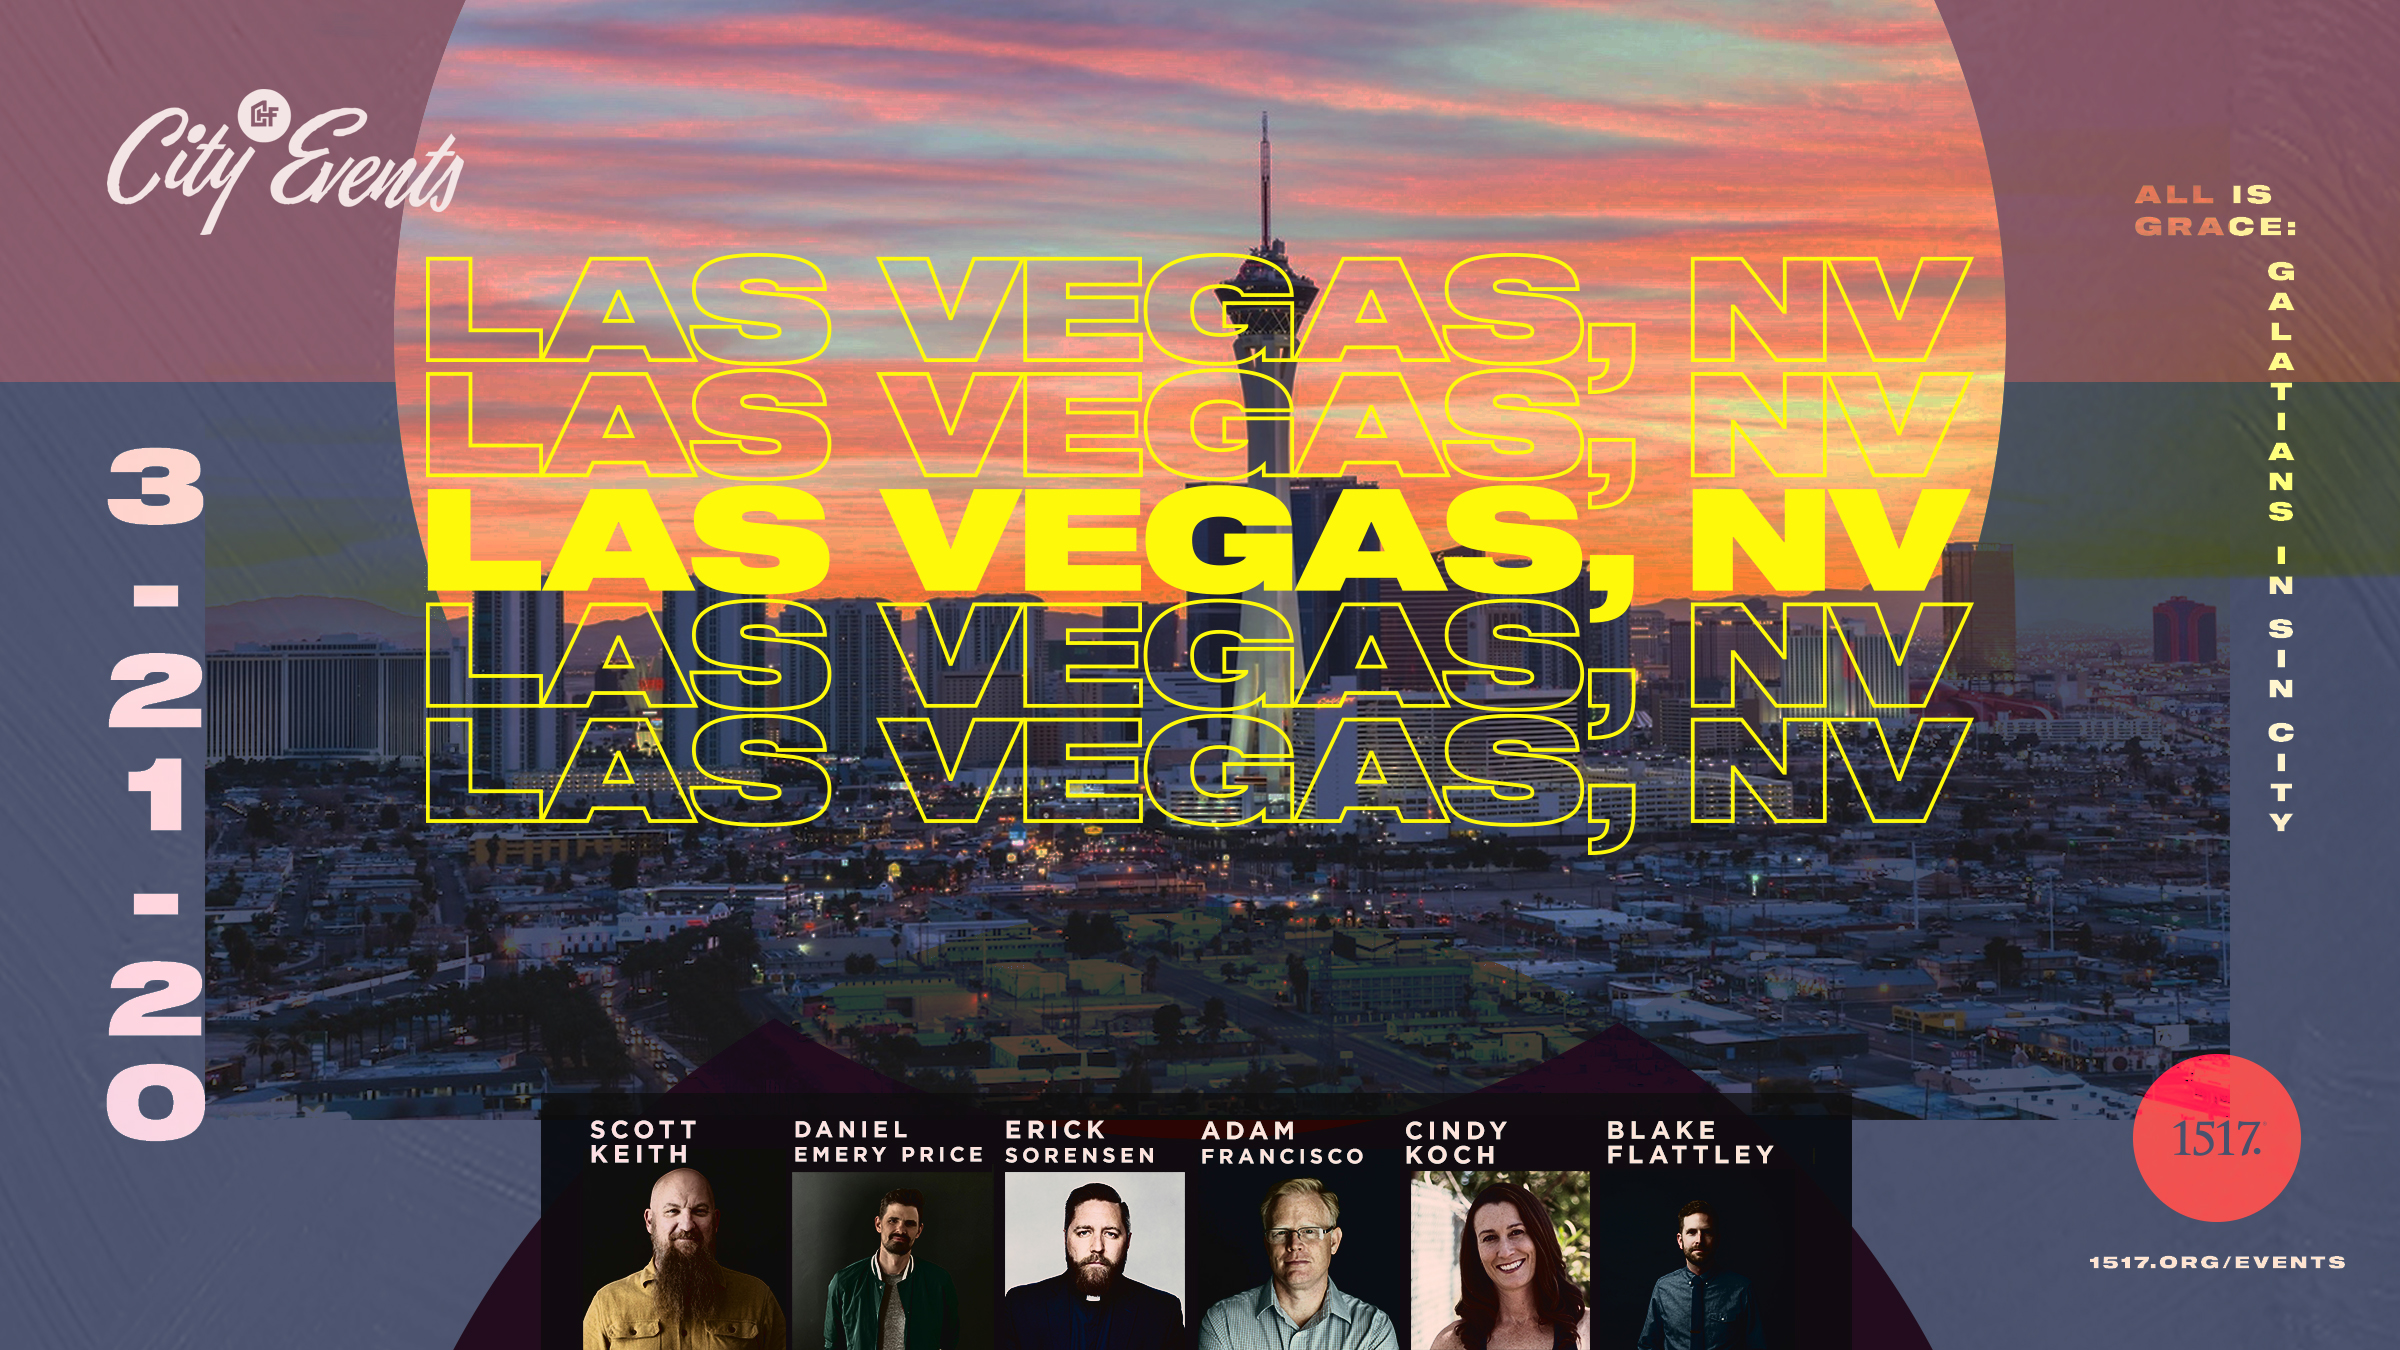 Vegas City Event image